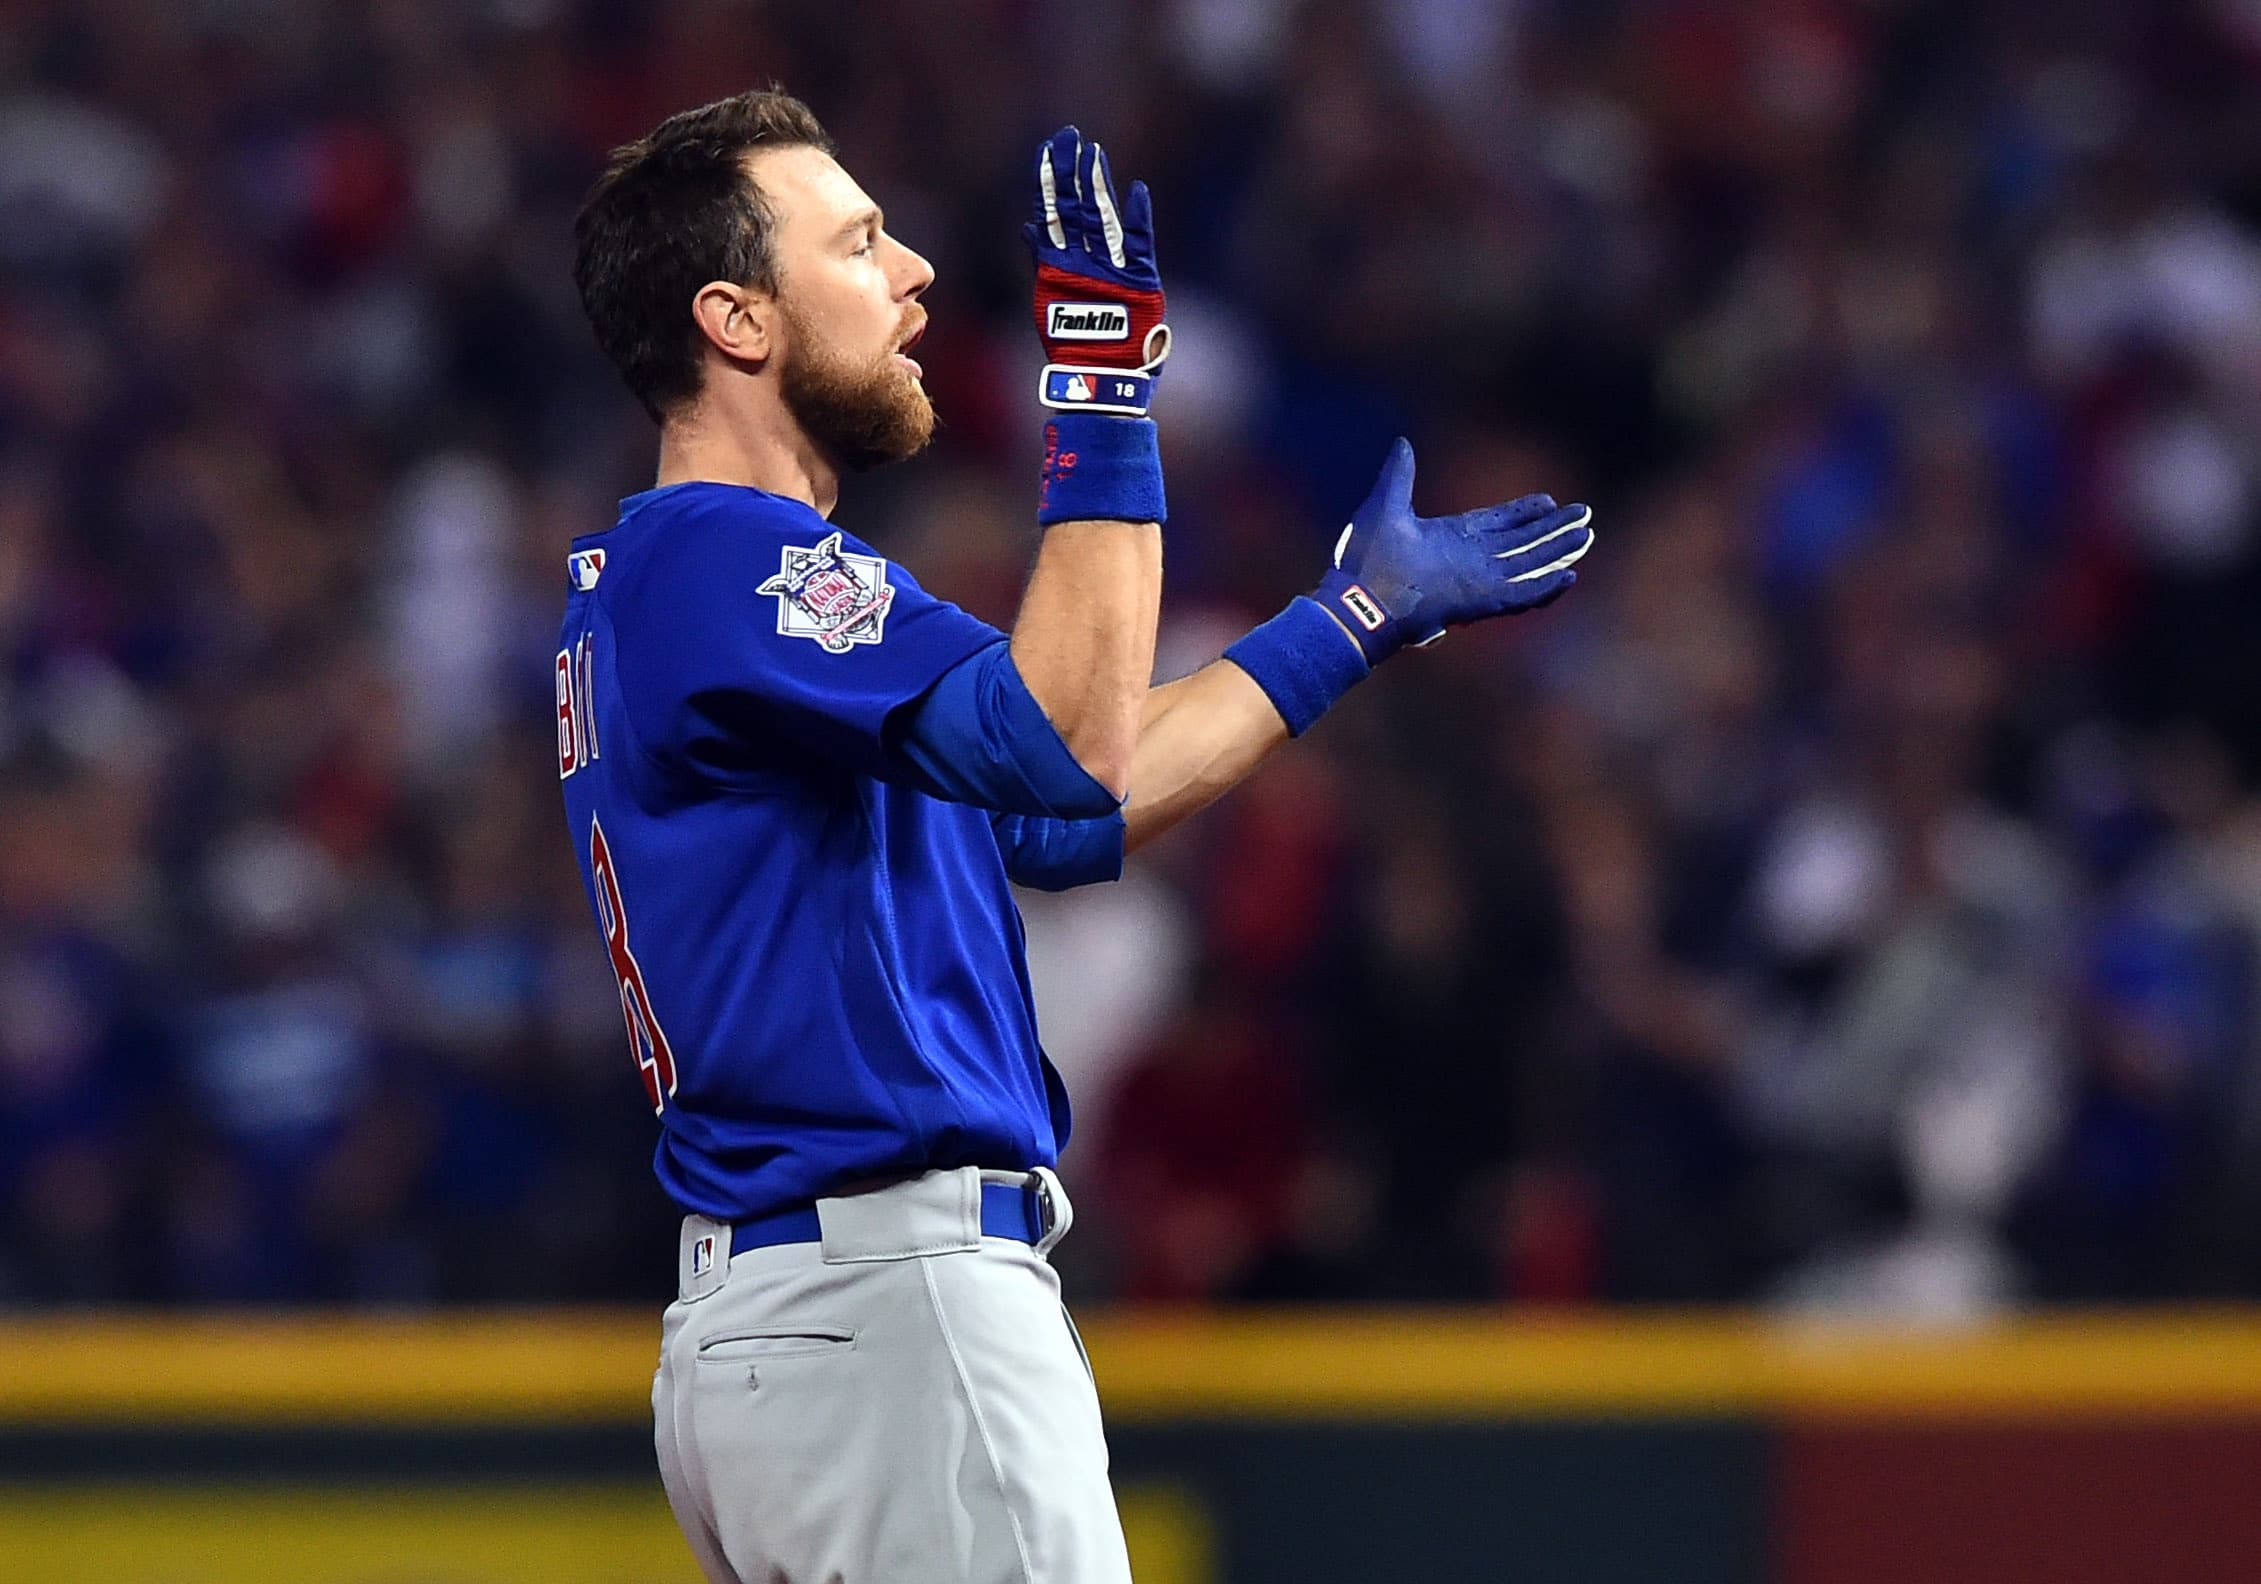 World Series MVP Ben Zobrist spent some time in the leadoff spot last season while Dexter Fowler was injured. (Ken Blaze/USA TODAY Sports)